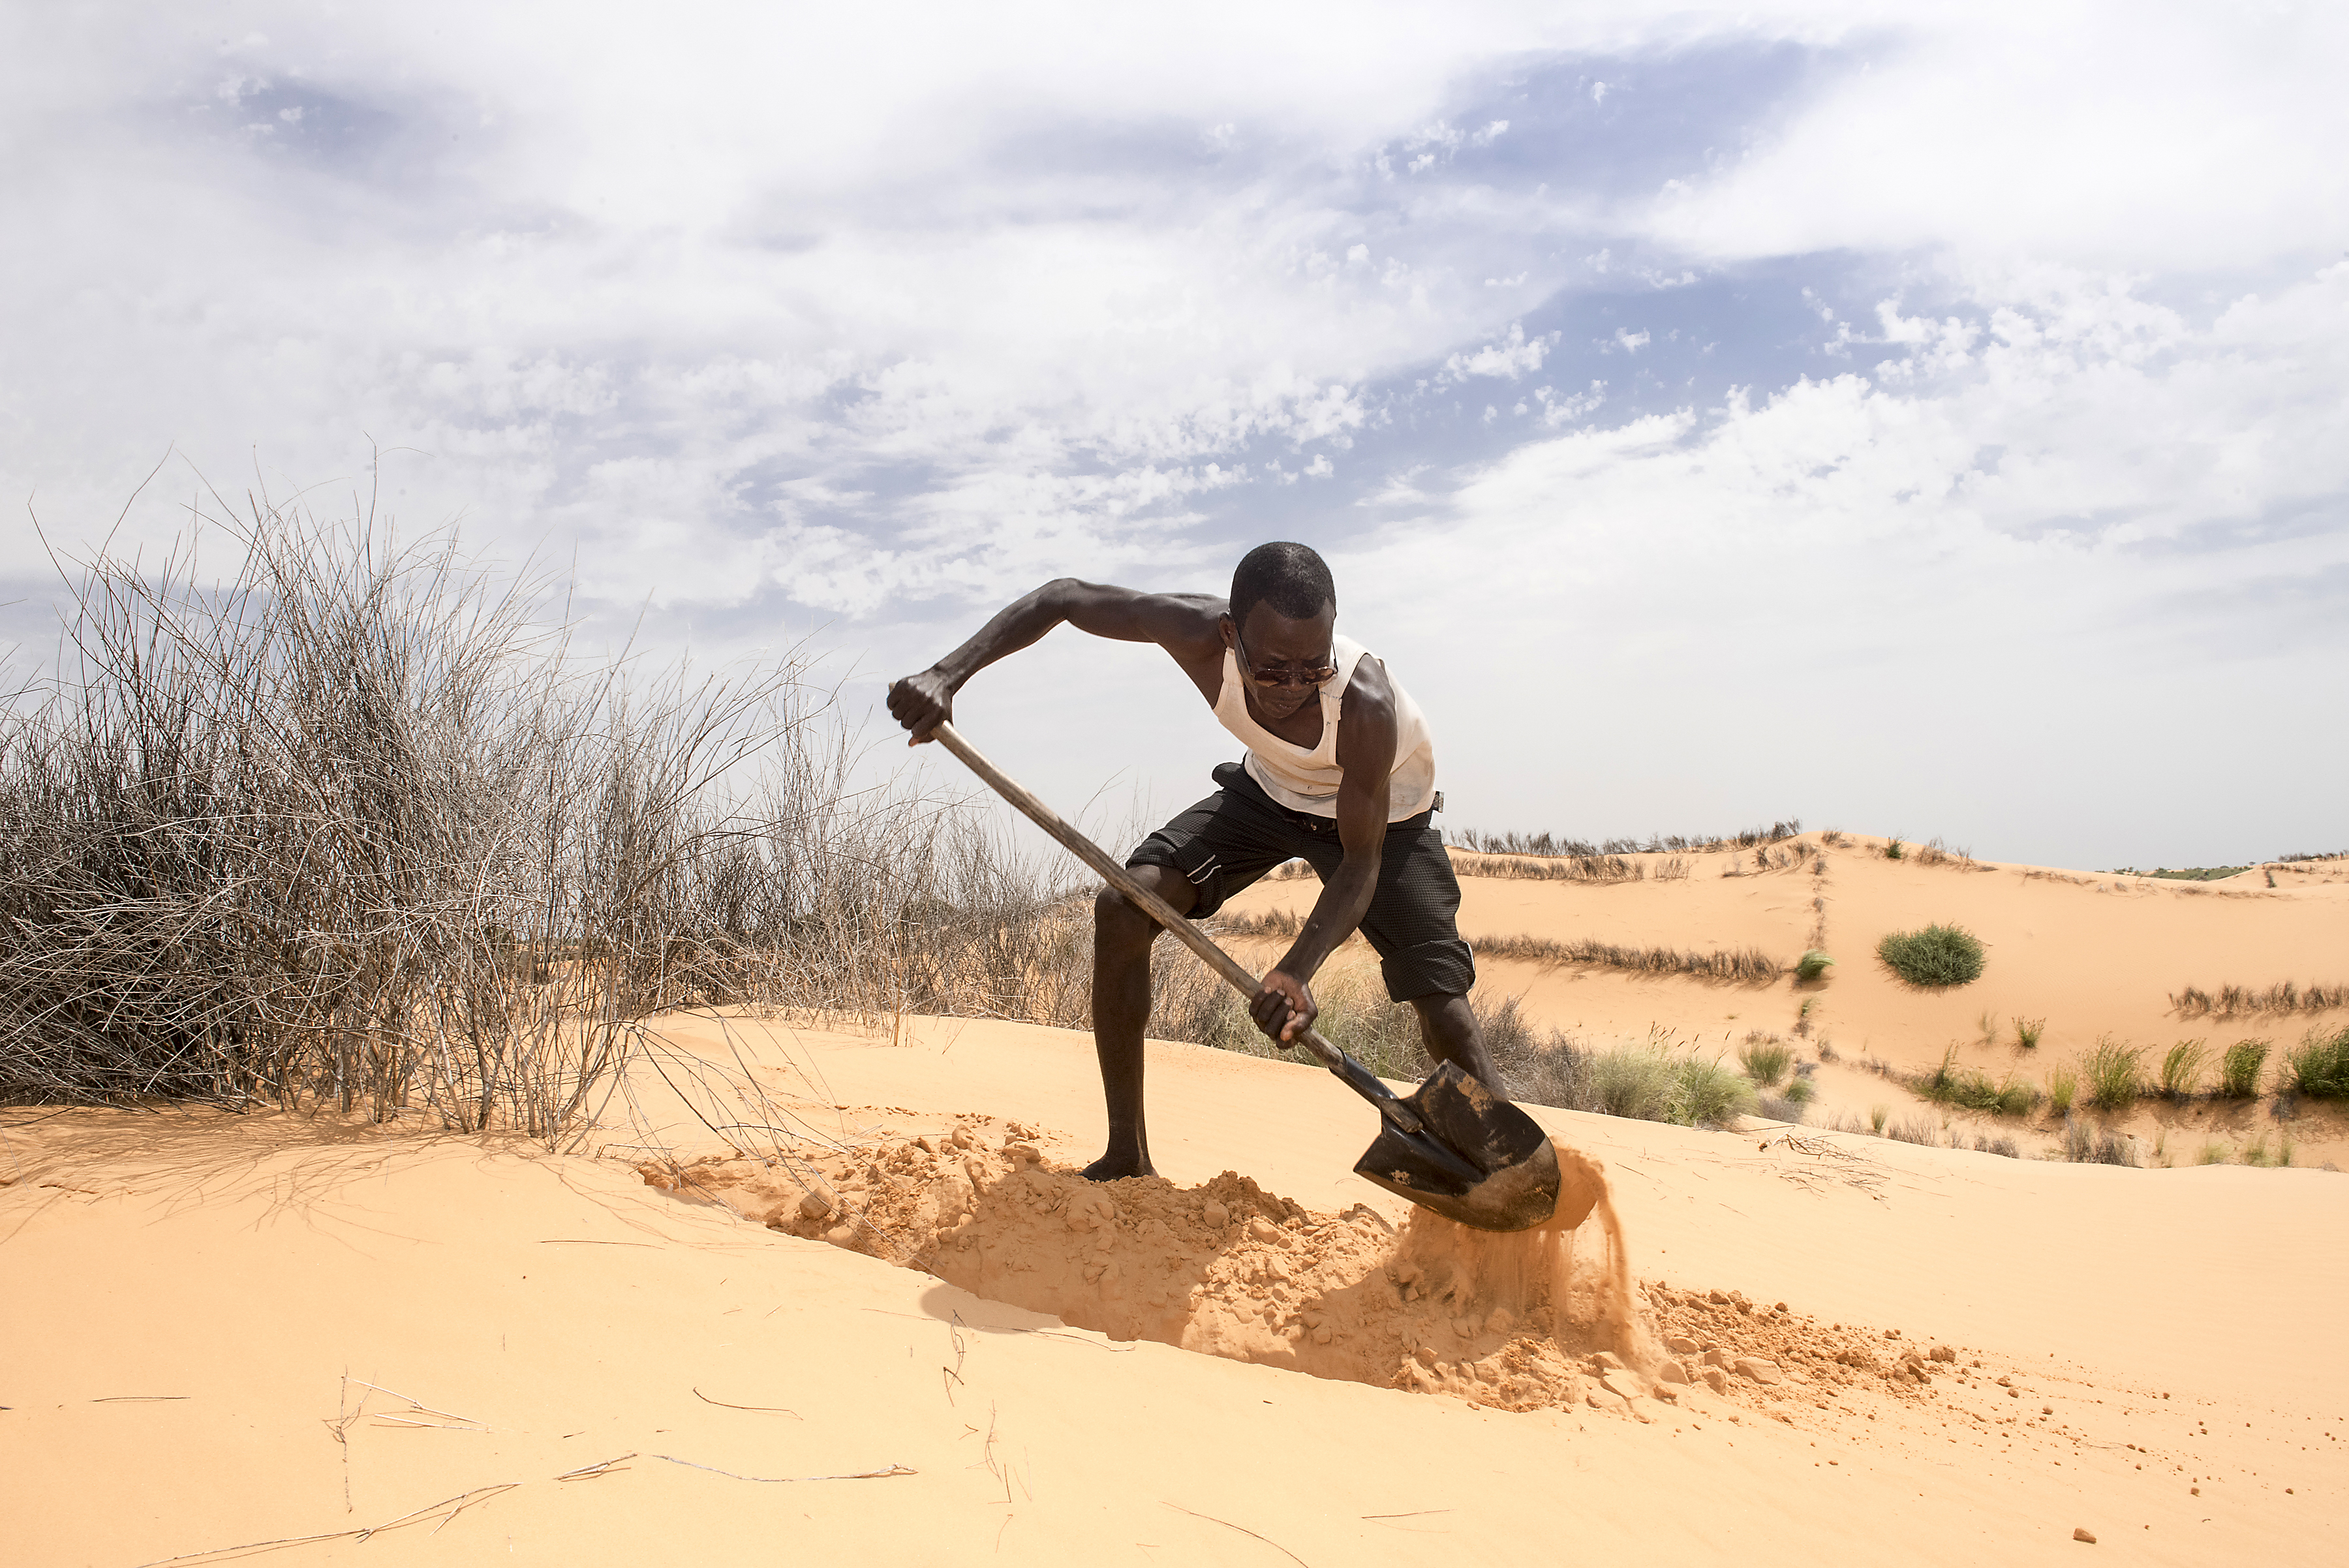 A man shovels sand in a desert area with sand dunes visible in the background.